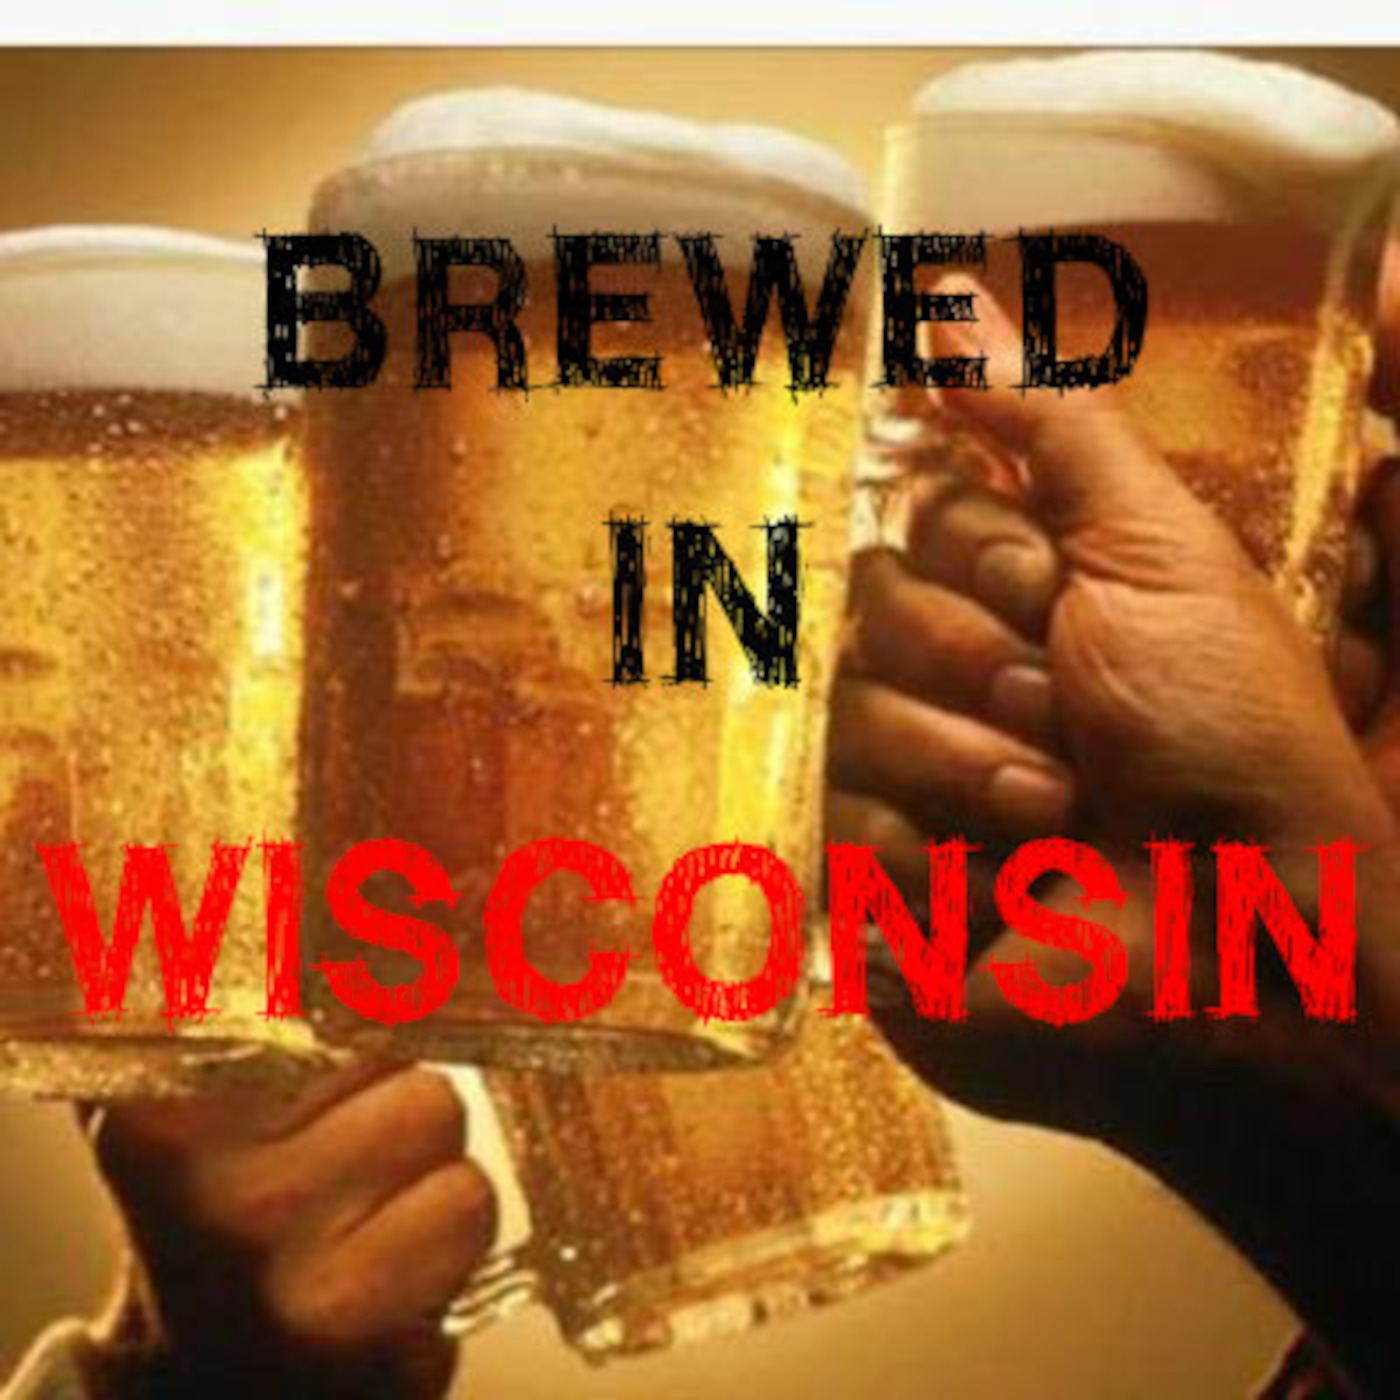 Brewed In WIsconsin